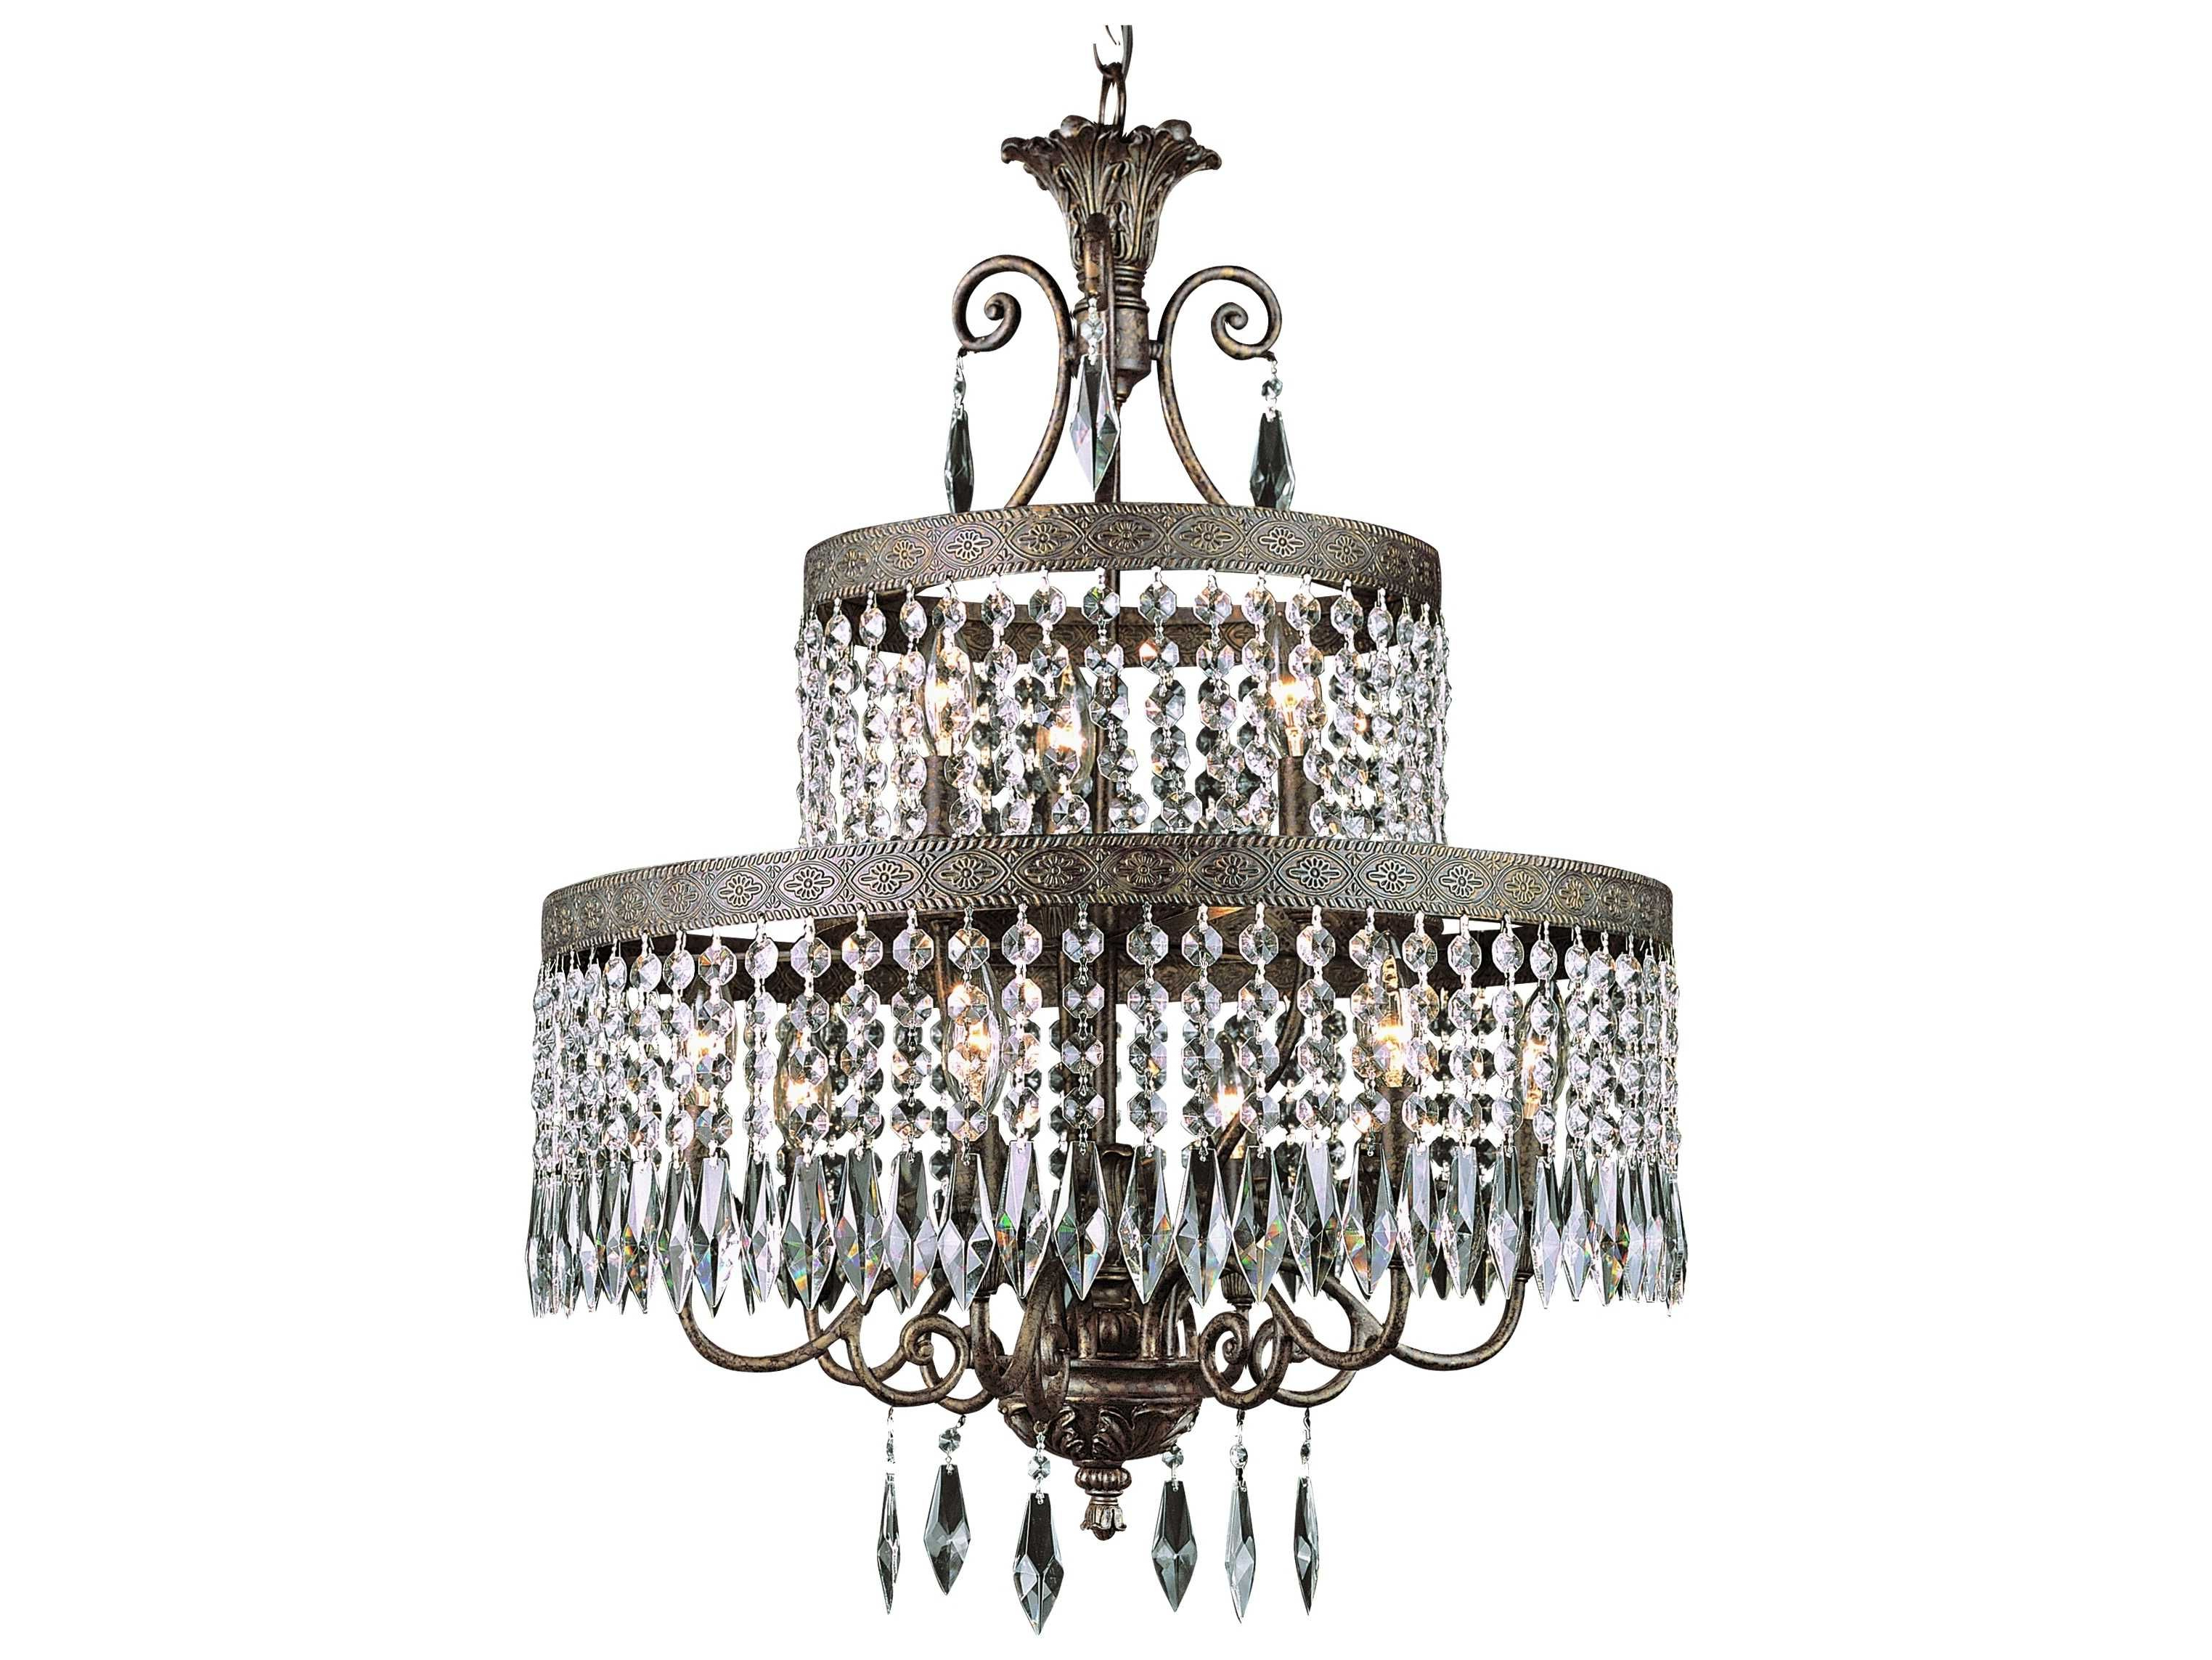 Most Popular Better Price Avail Trans Globe Lighting Eclectic Boutique With Benedetto 5 Light Crystal Chandeliers (View 9 of 20)